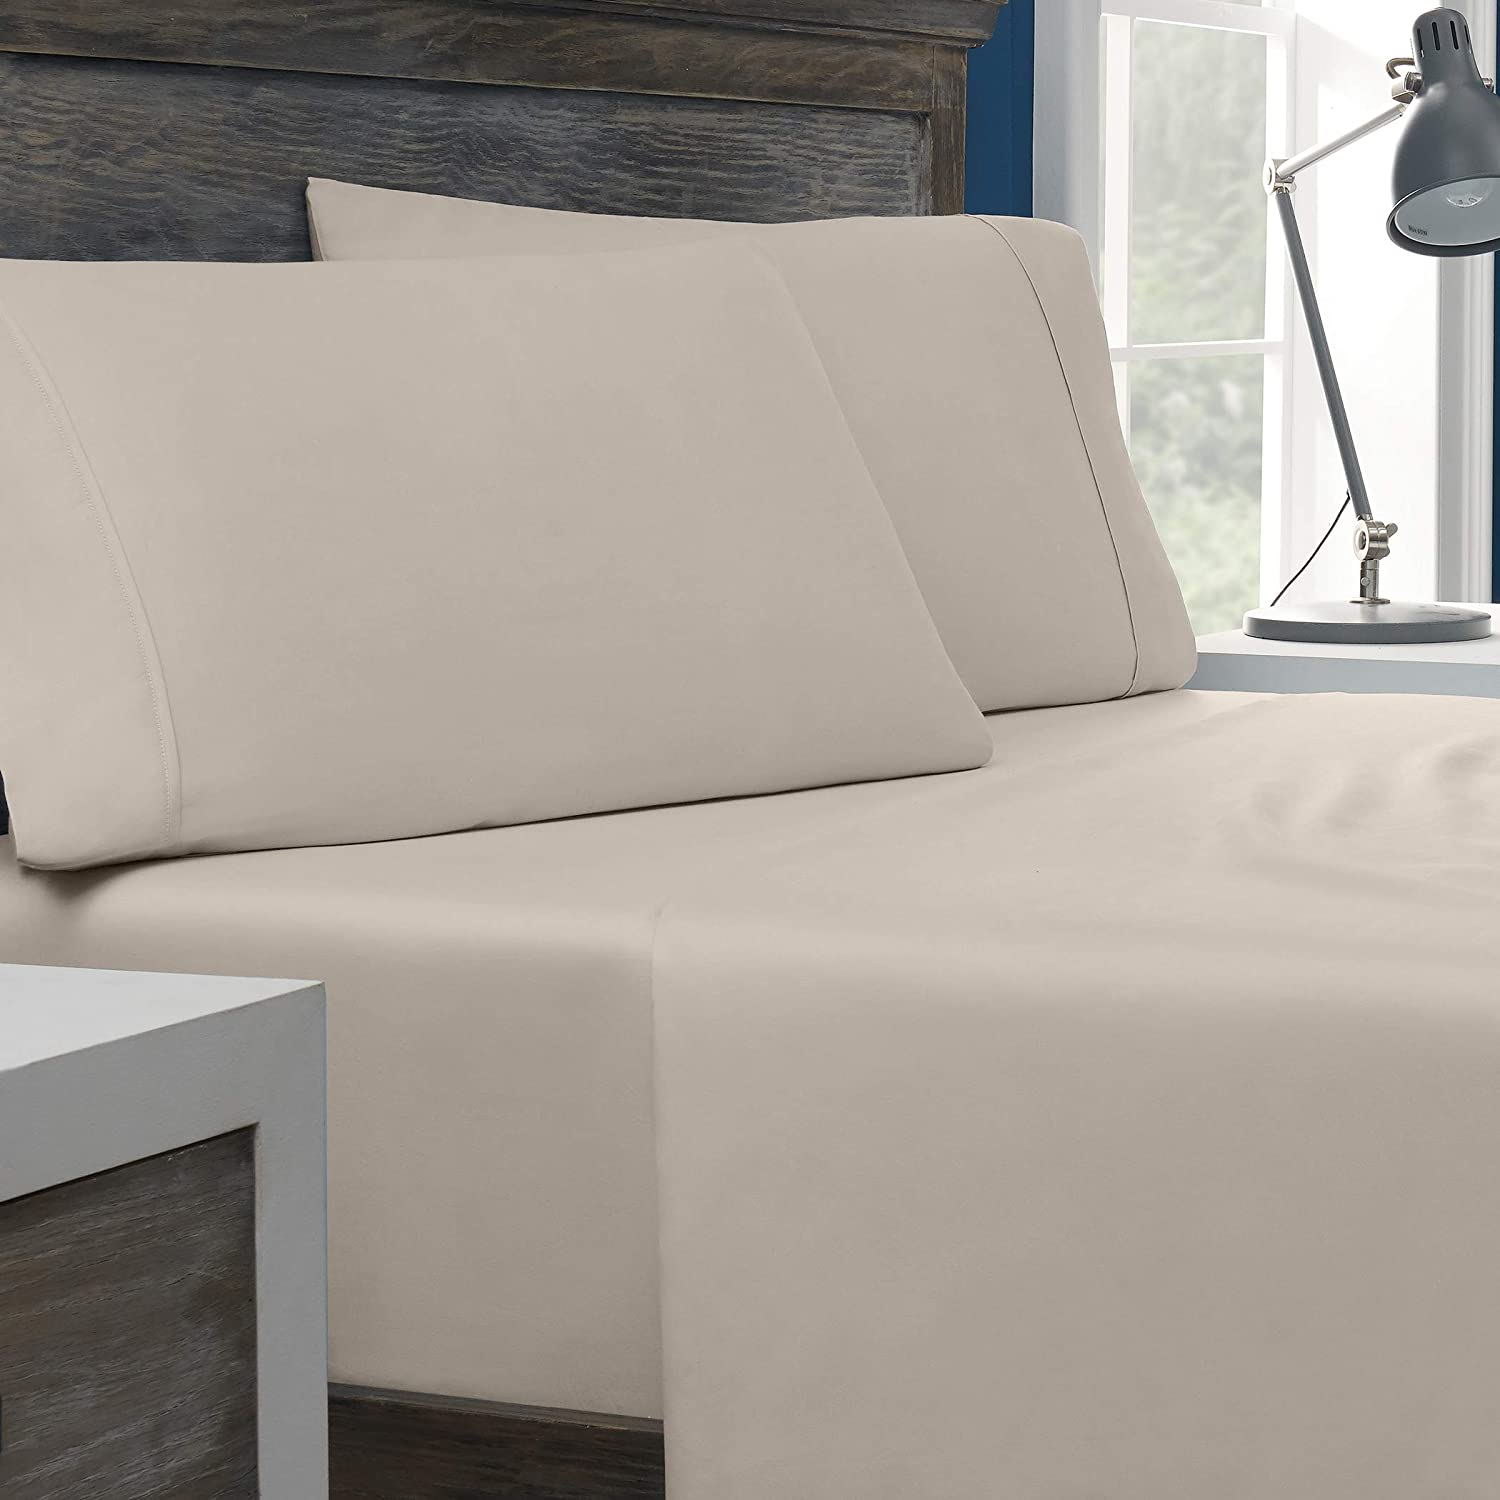 Columbia Tencel + Cotton Performance Sheet Set – Omni-Wick Moisture Wicking Stay Dry Technology – Naturally Soft, Cool, Breathable Temperature Regulating - King 4-Piece Sheet Set, Pumice